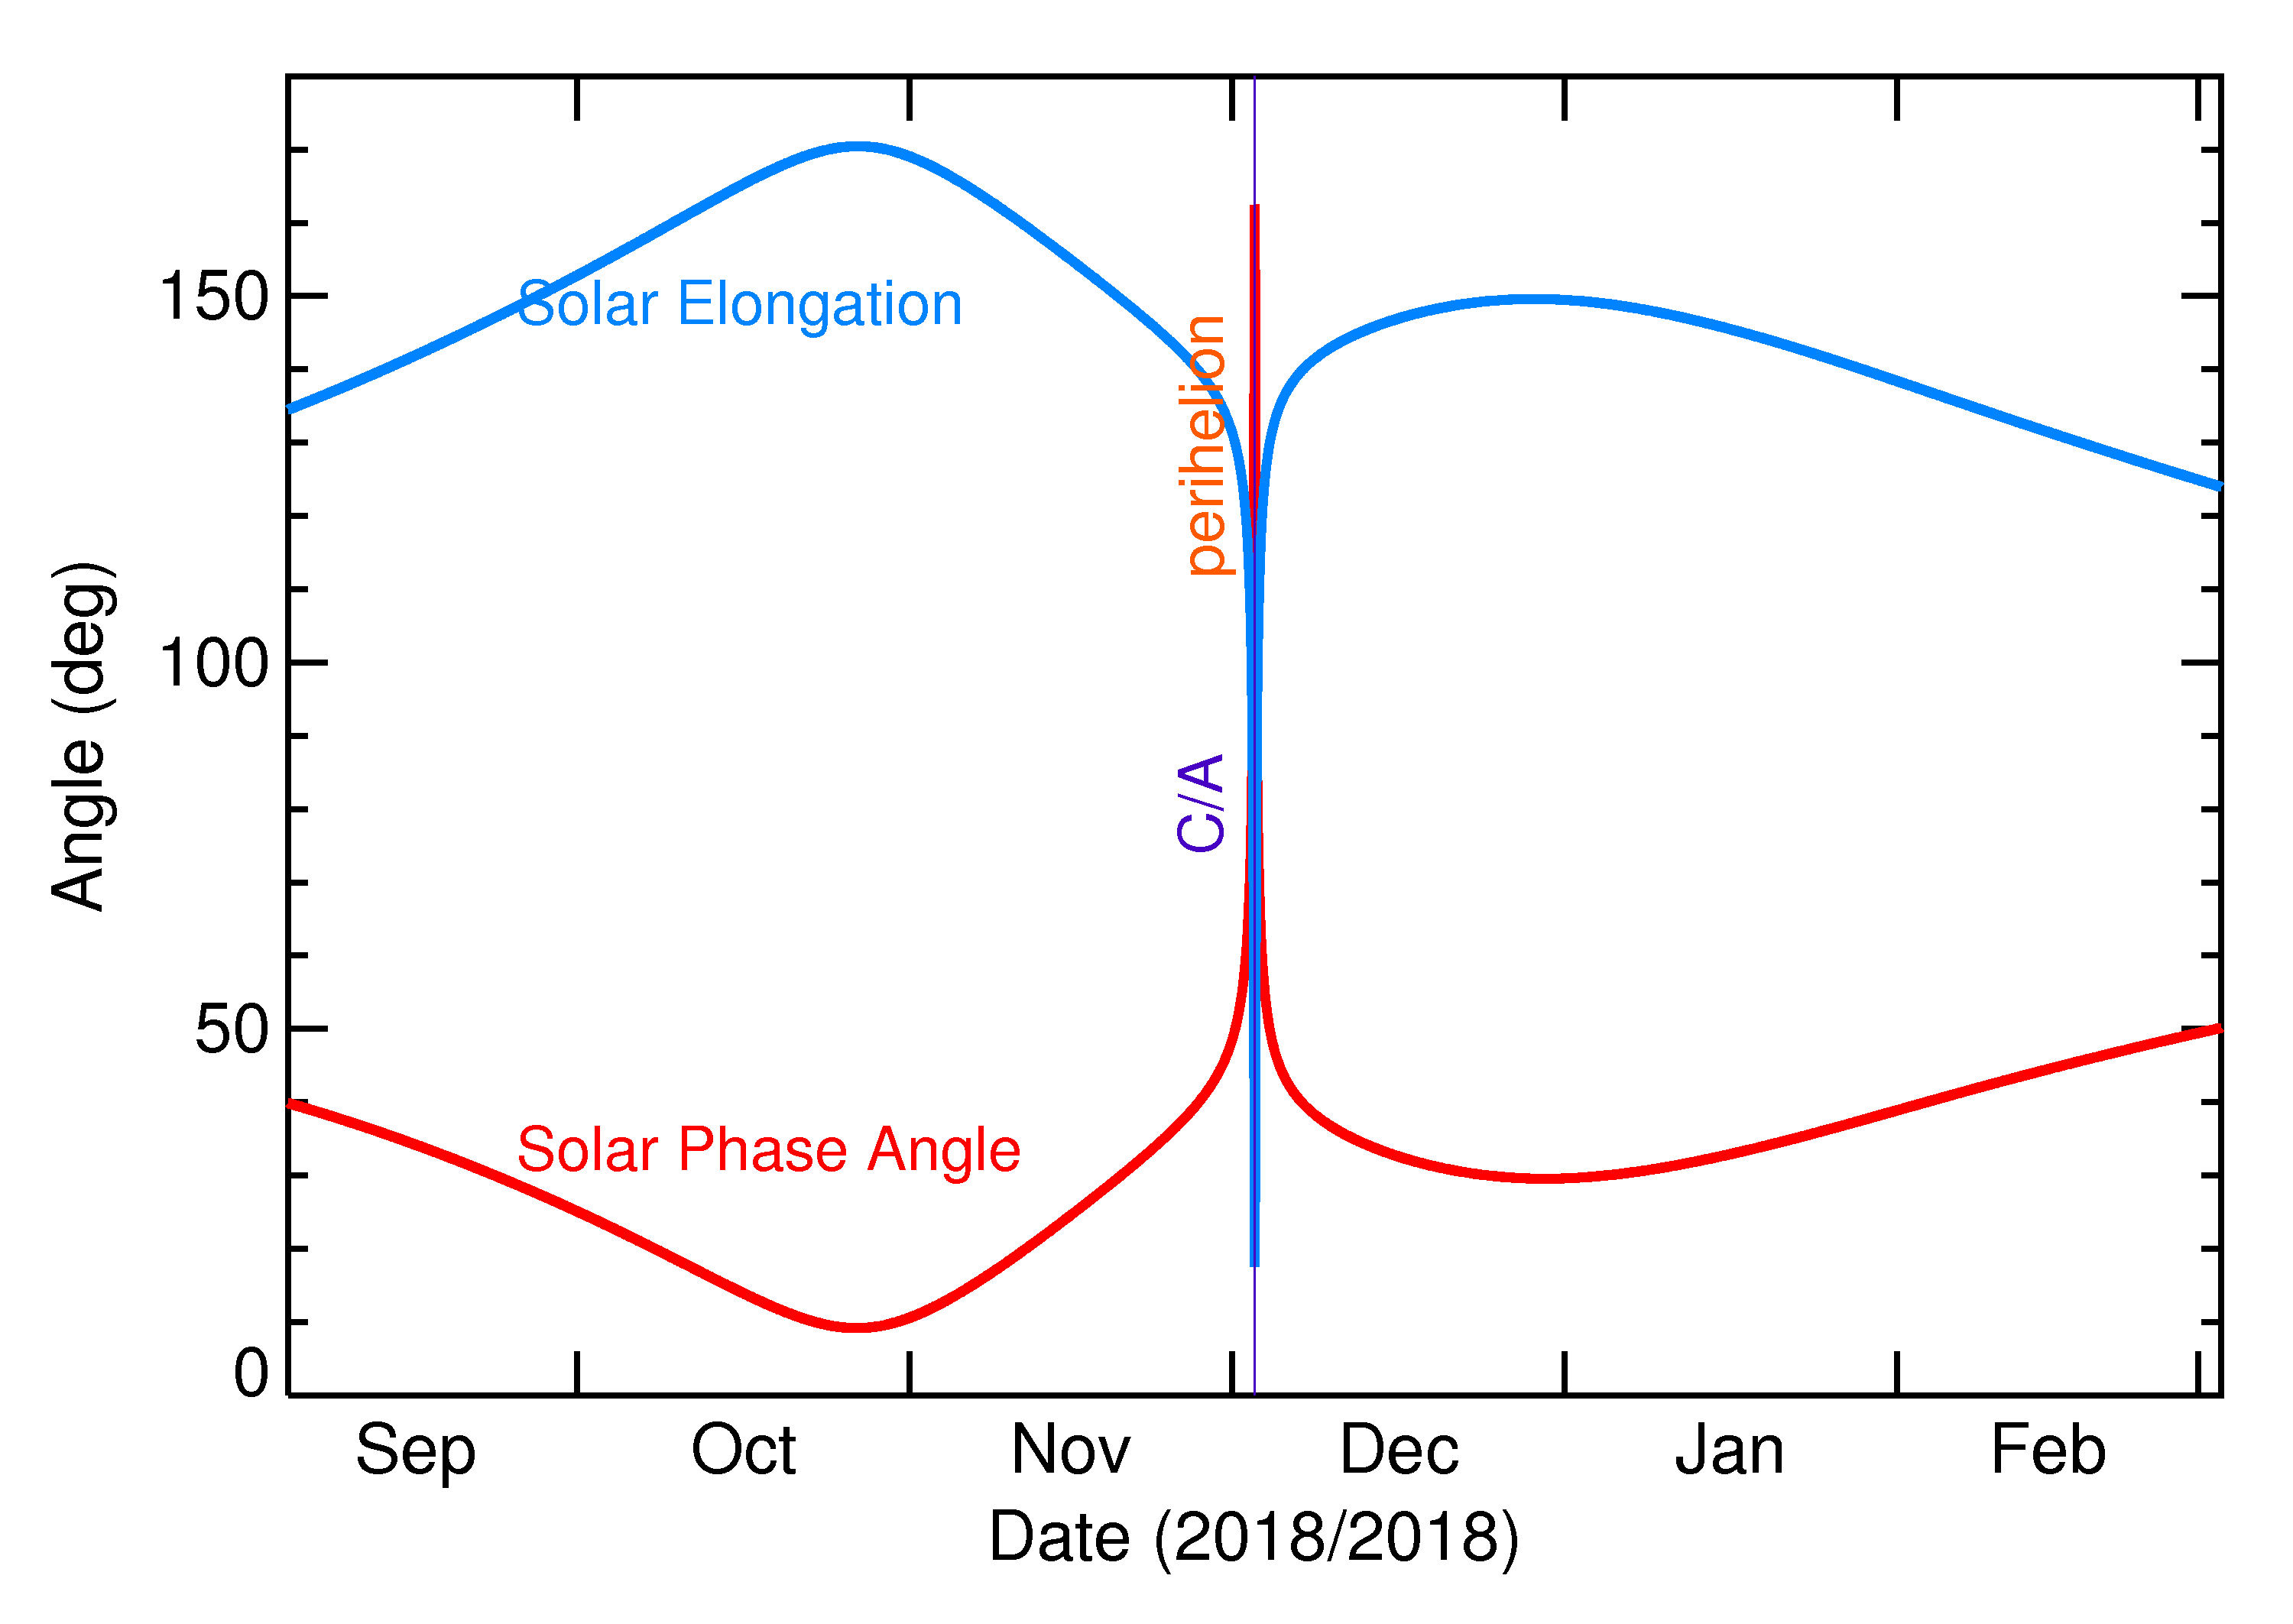 Solar Elongation and Solar Phase Angle of 2018 WV1 in the months around closest approach